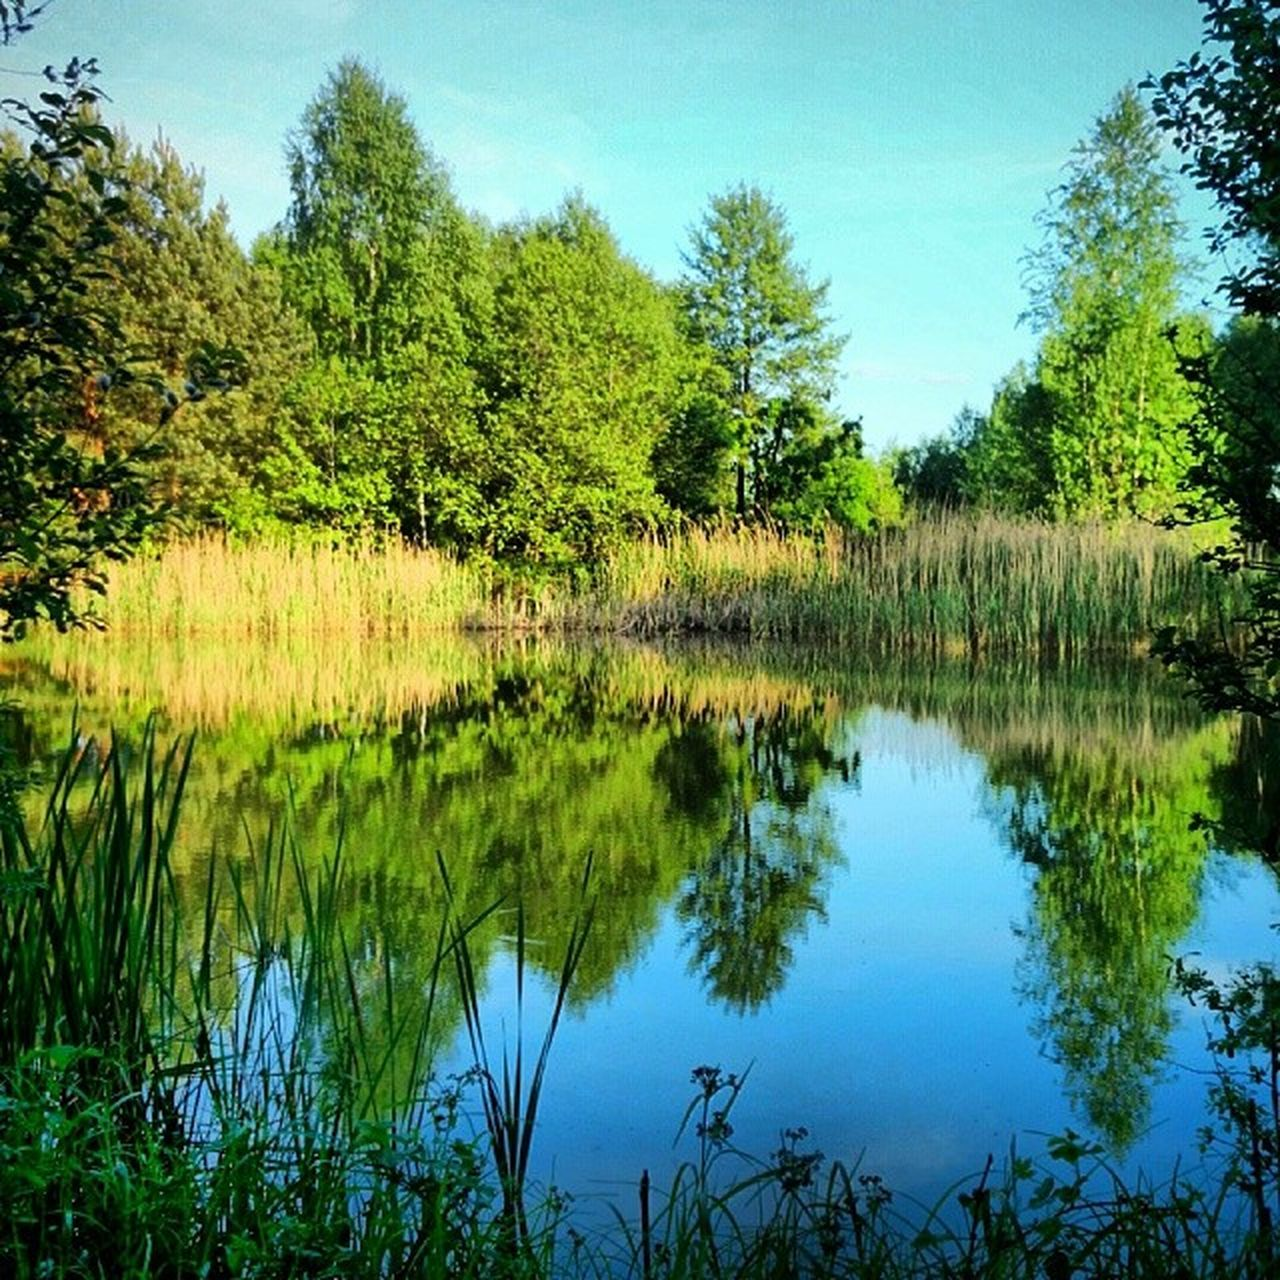 reflection, lake, tree, nature, water, beauty in nature, tranquil scene, tranquility, scenics, no people, outdoors, vegetation, growth, forest, day, landscape, sky